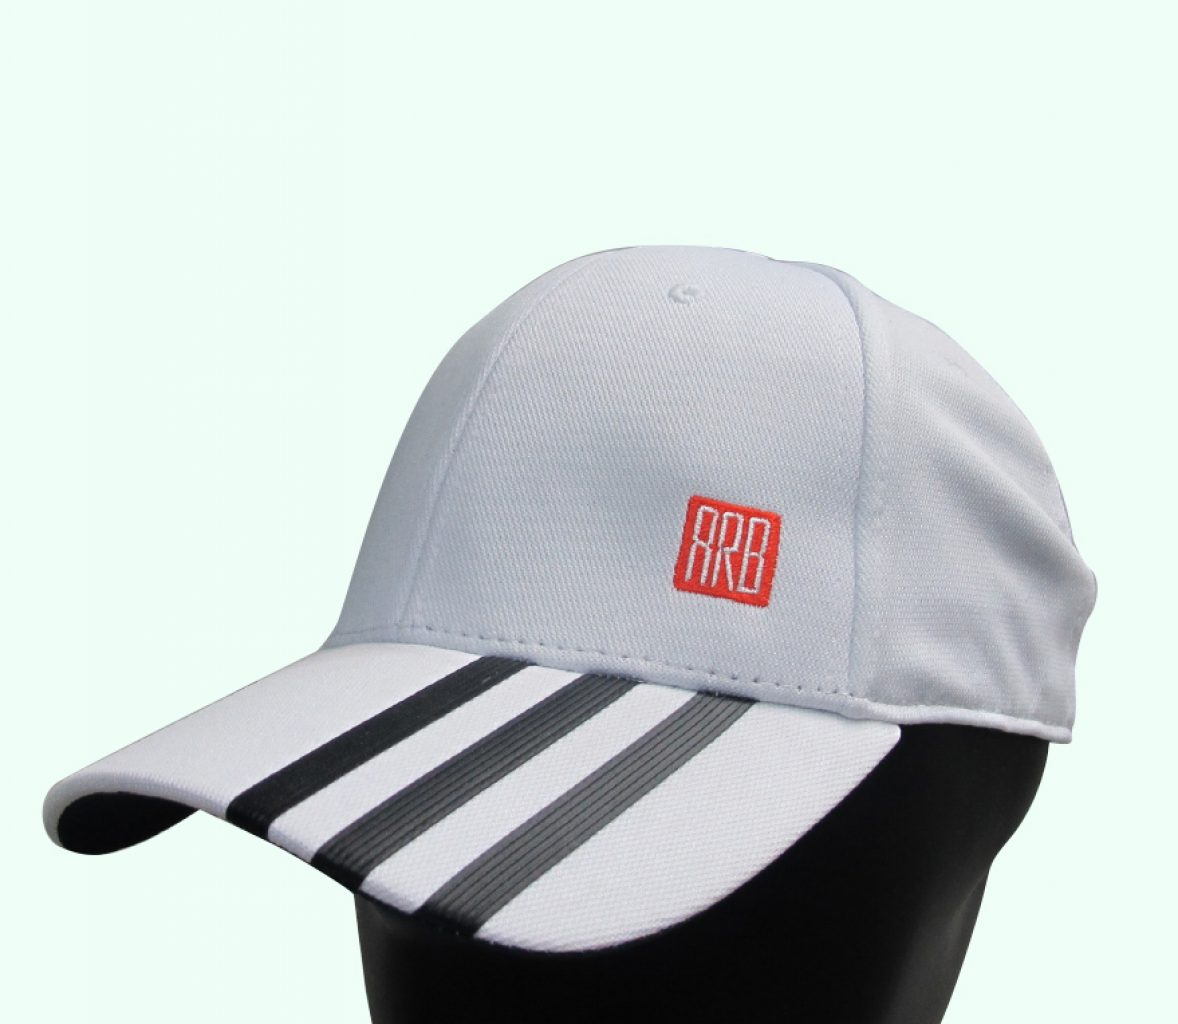 Embroidery on Cap